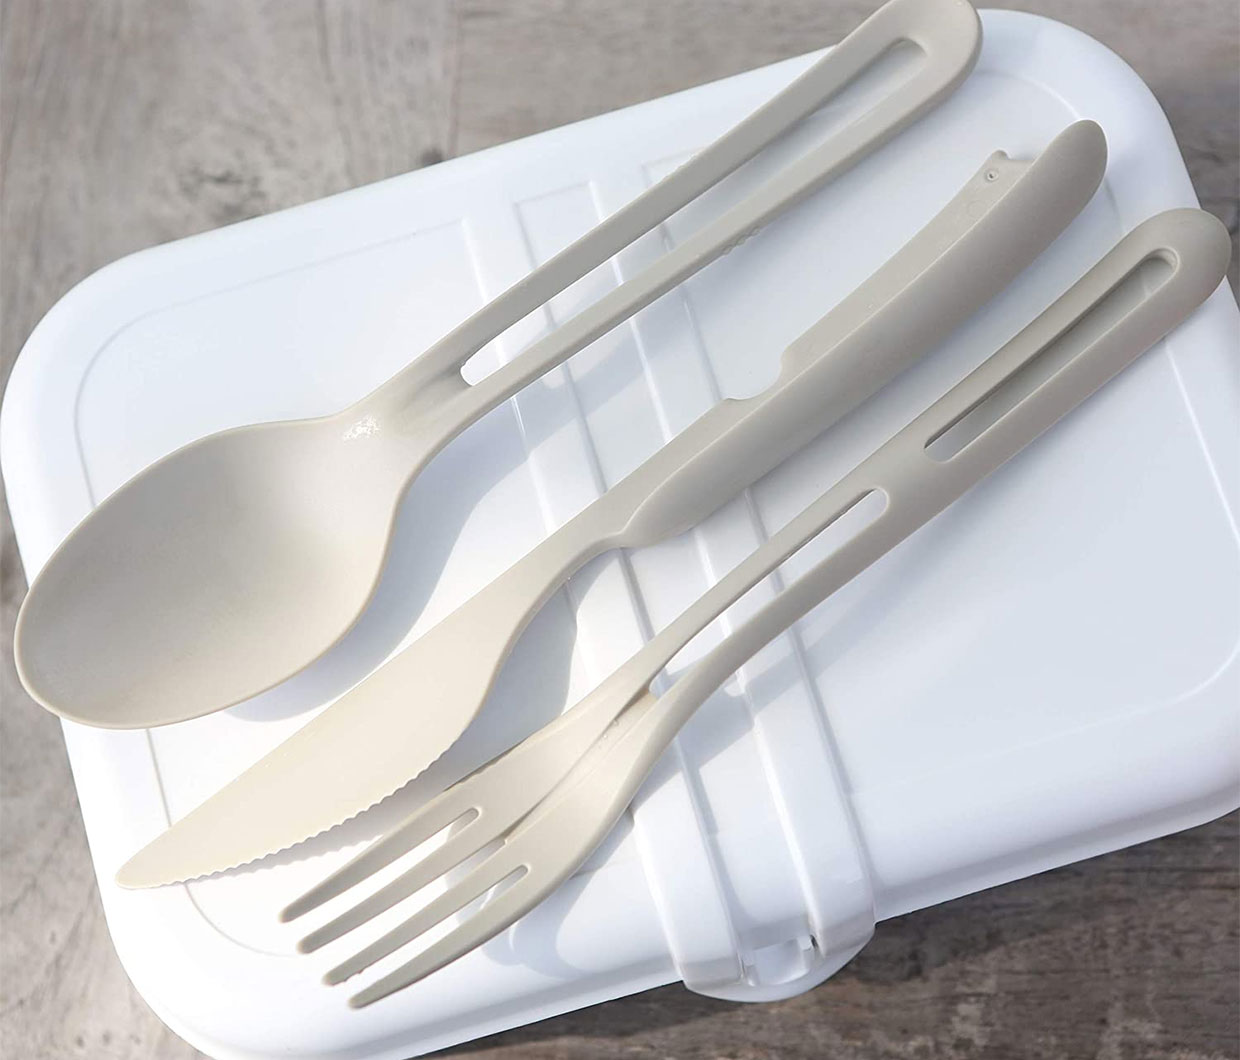 Klikk Snap-together Flatware